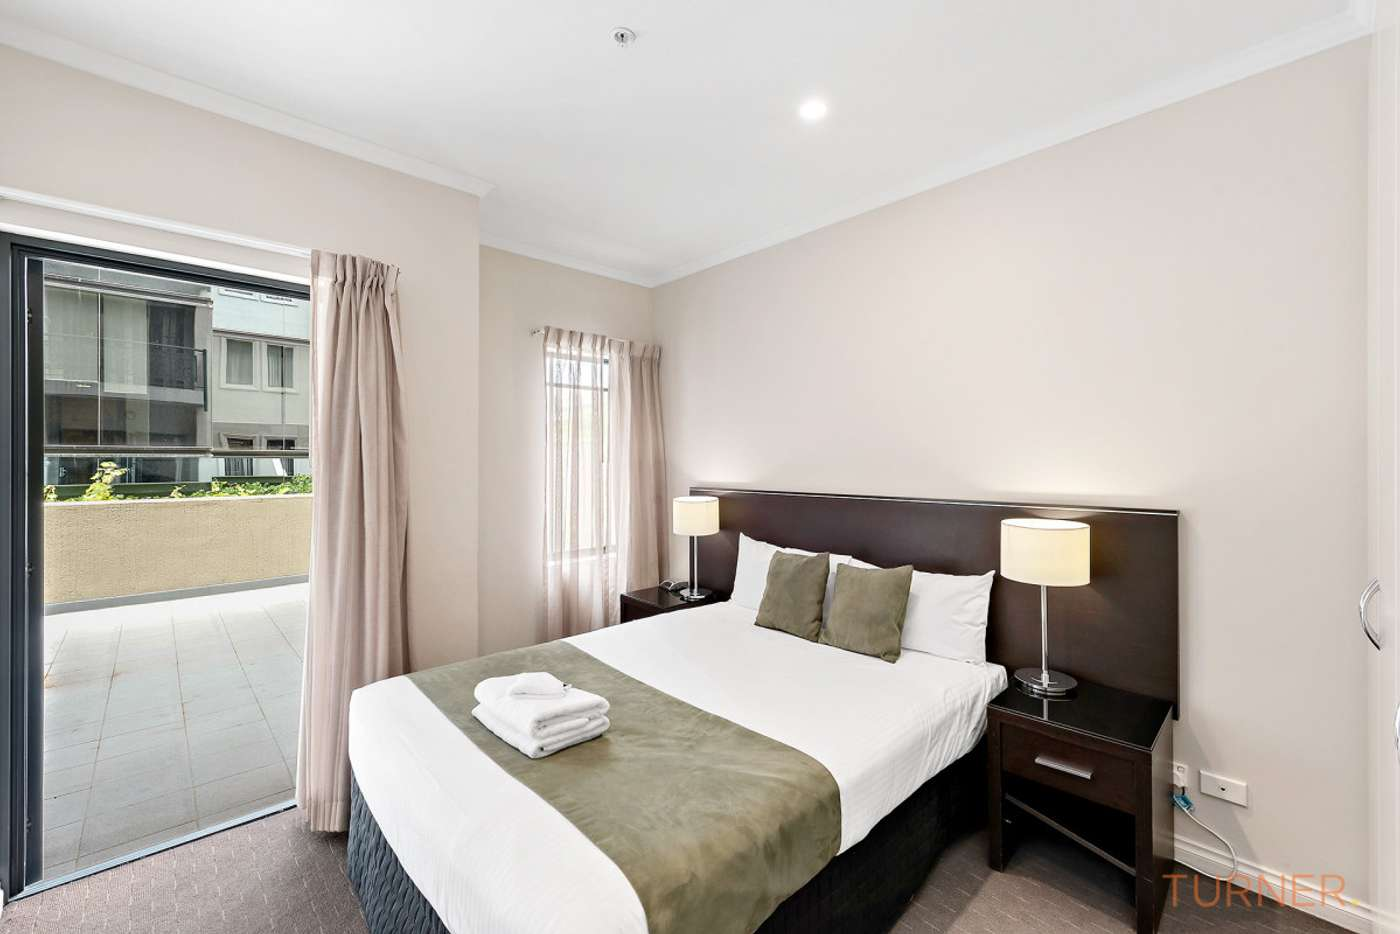 Fifth view of Homely apartment listing, 107/88 Frome Street, Adelaide SA 5000